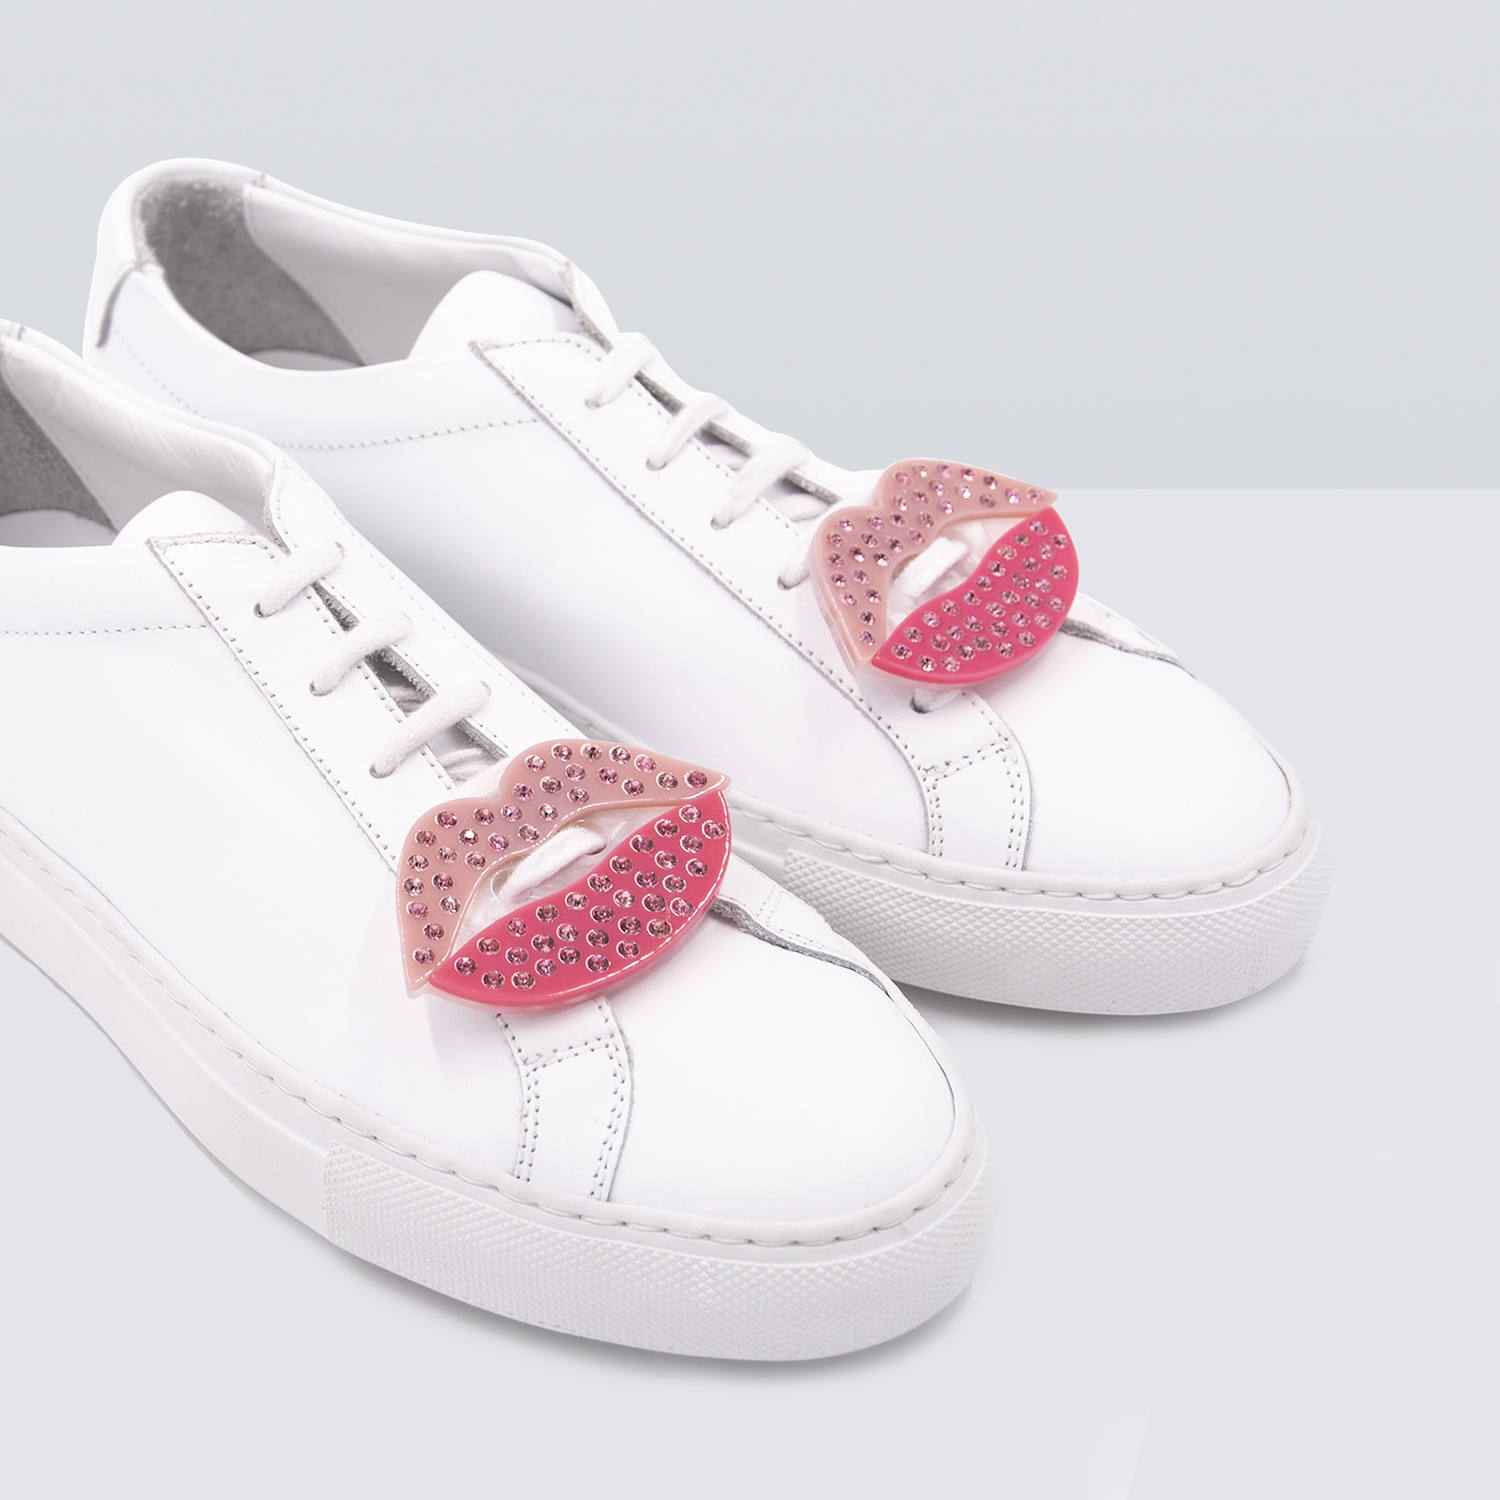 Acryl Sneaker Patches - Glitter Lips